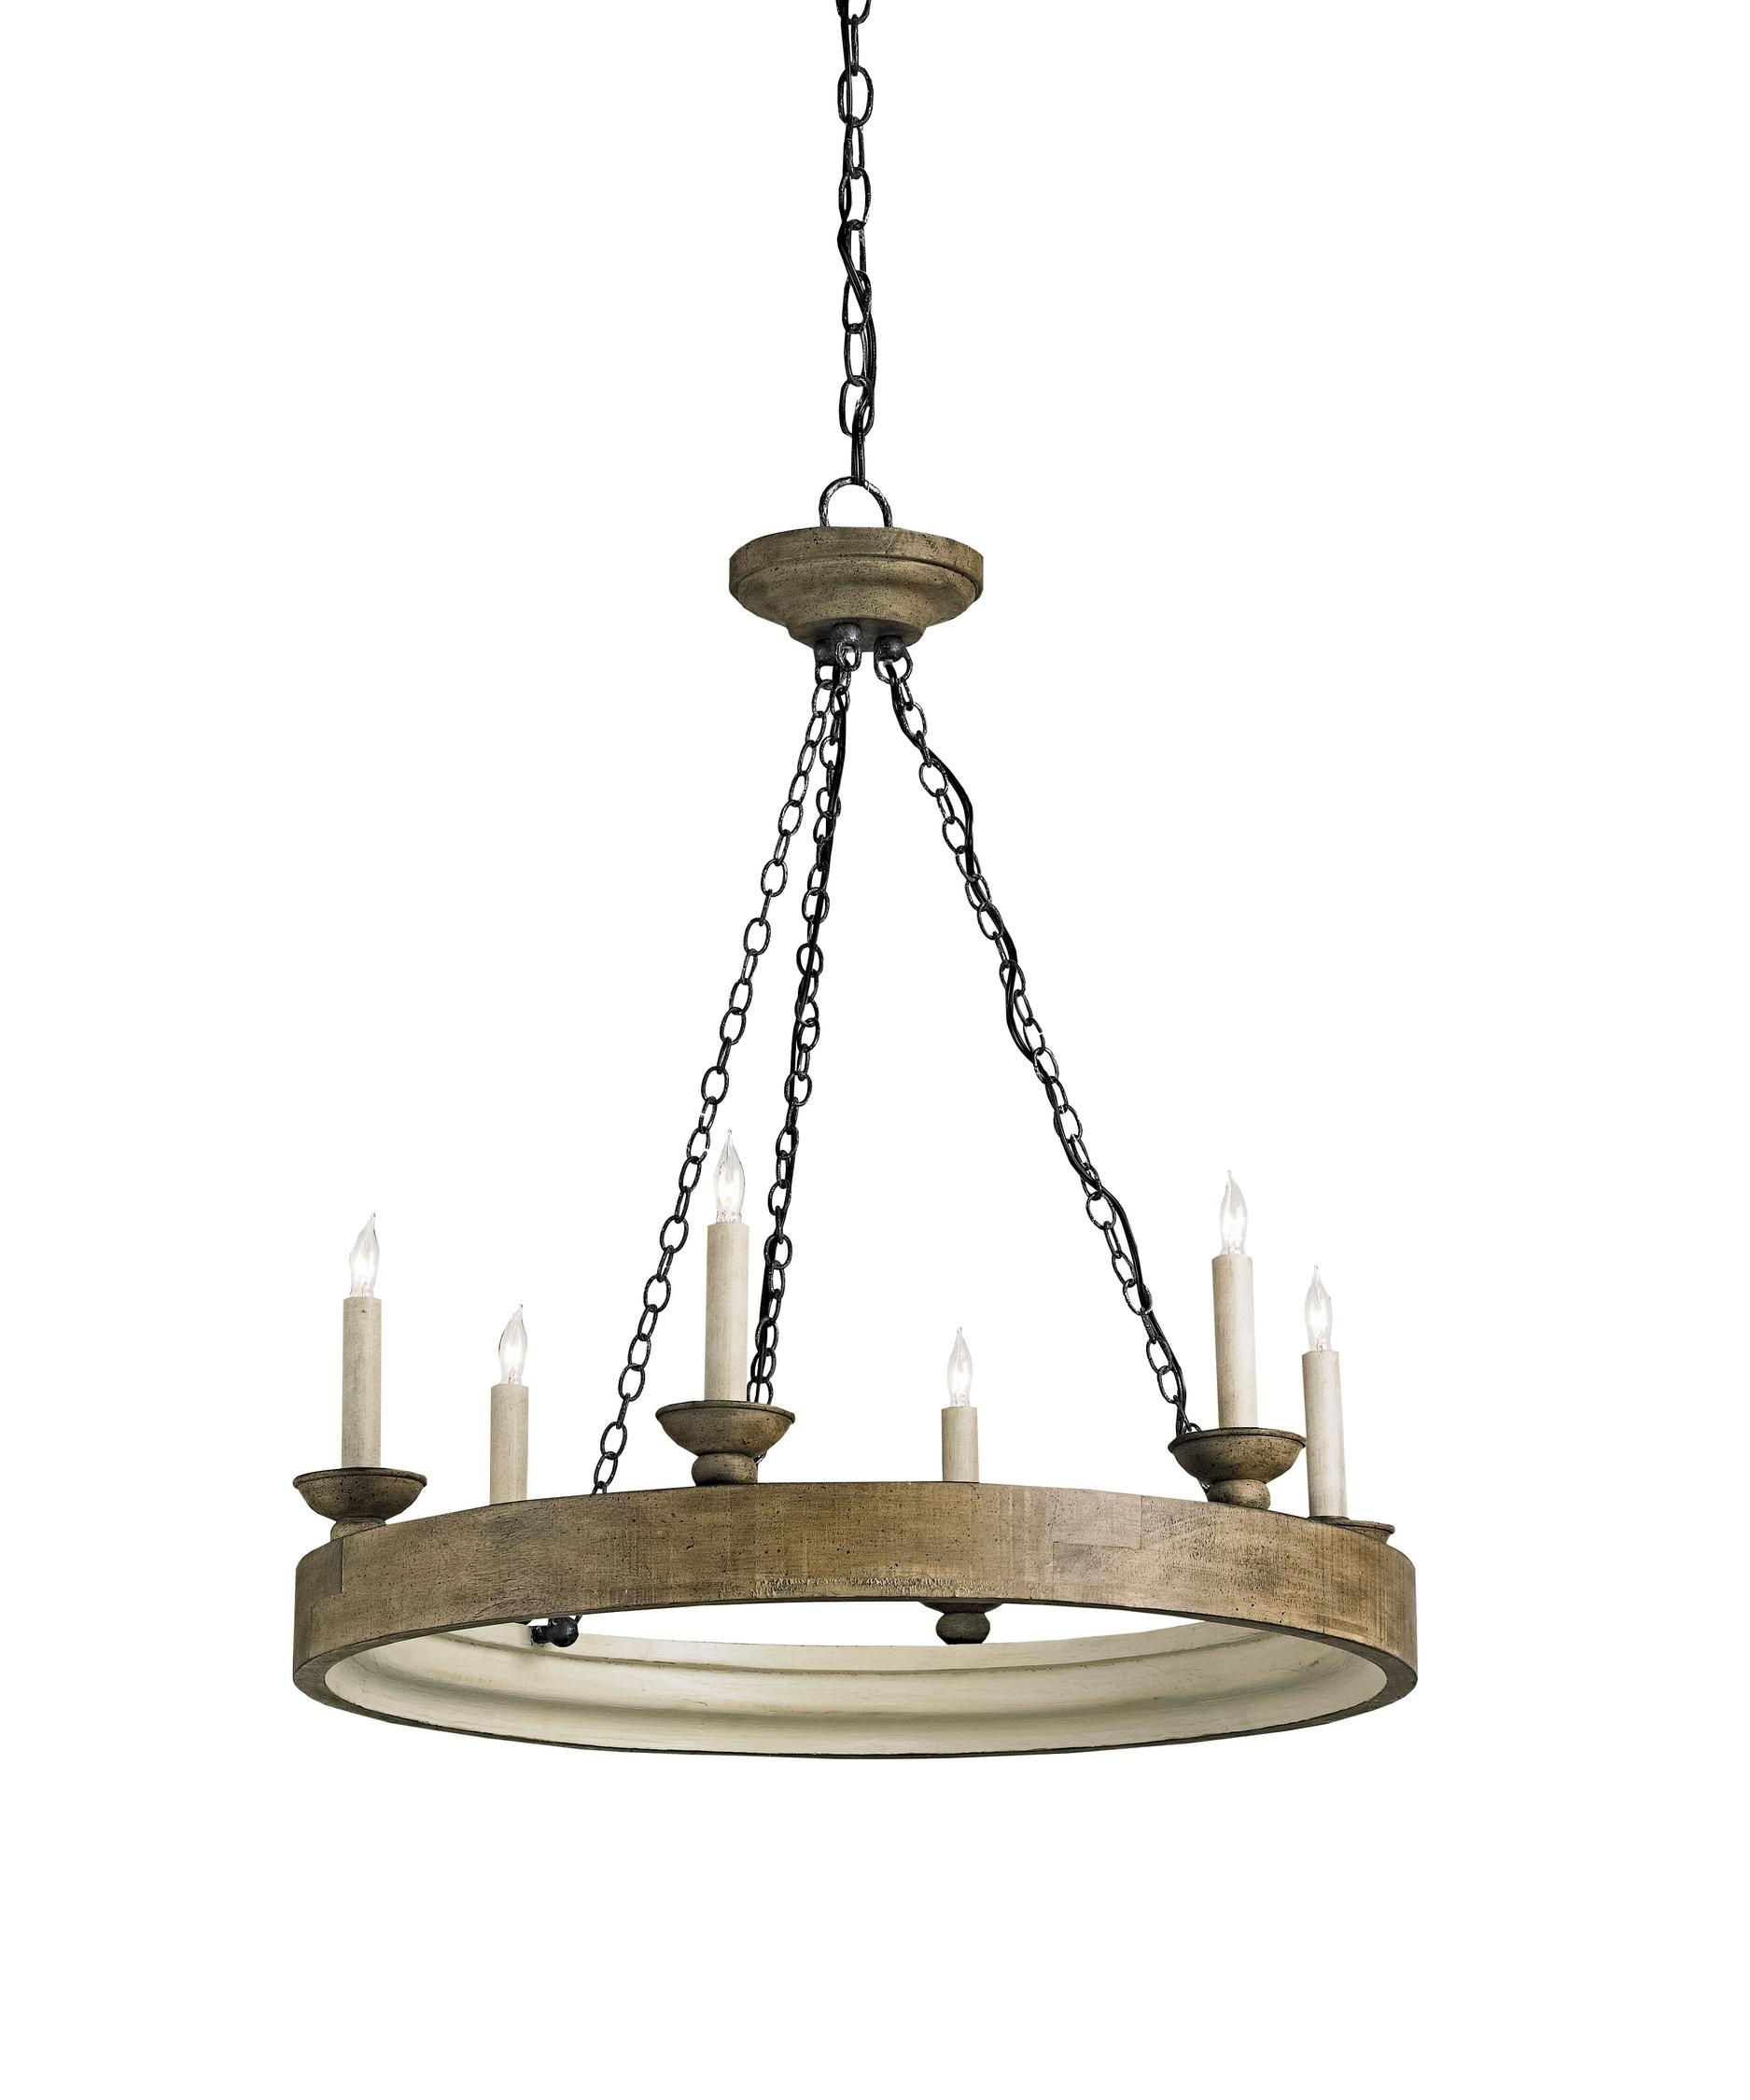 Currey and Company Beachhouse Chandelier | Capitol Lighting  1-800lighting.com